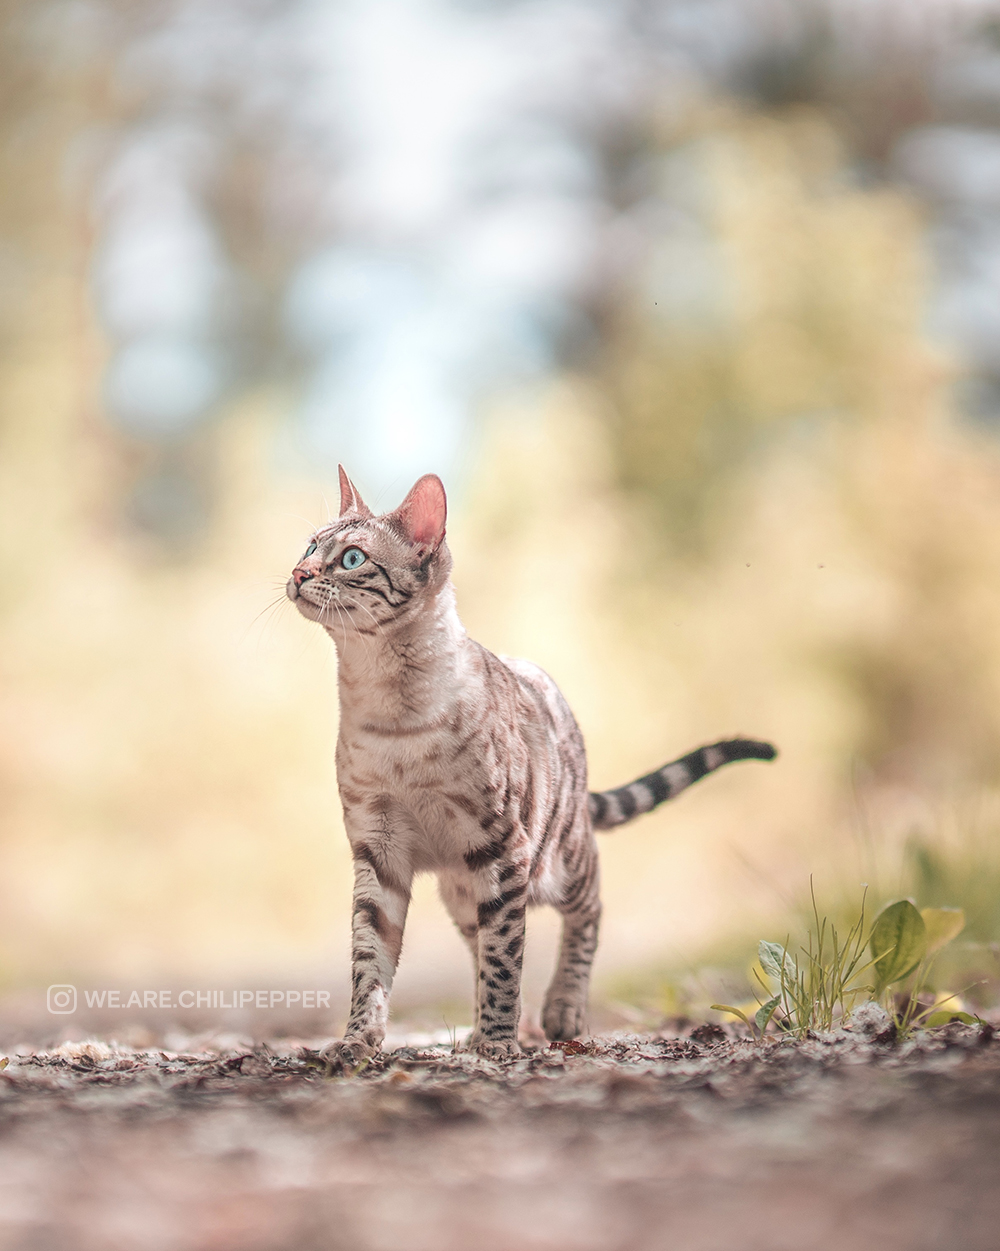 A cat in the outdoors